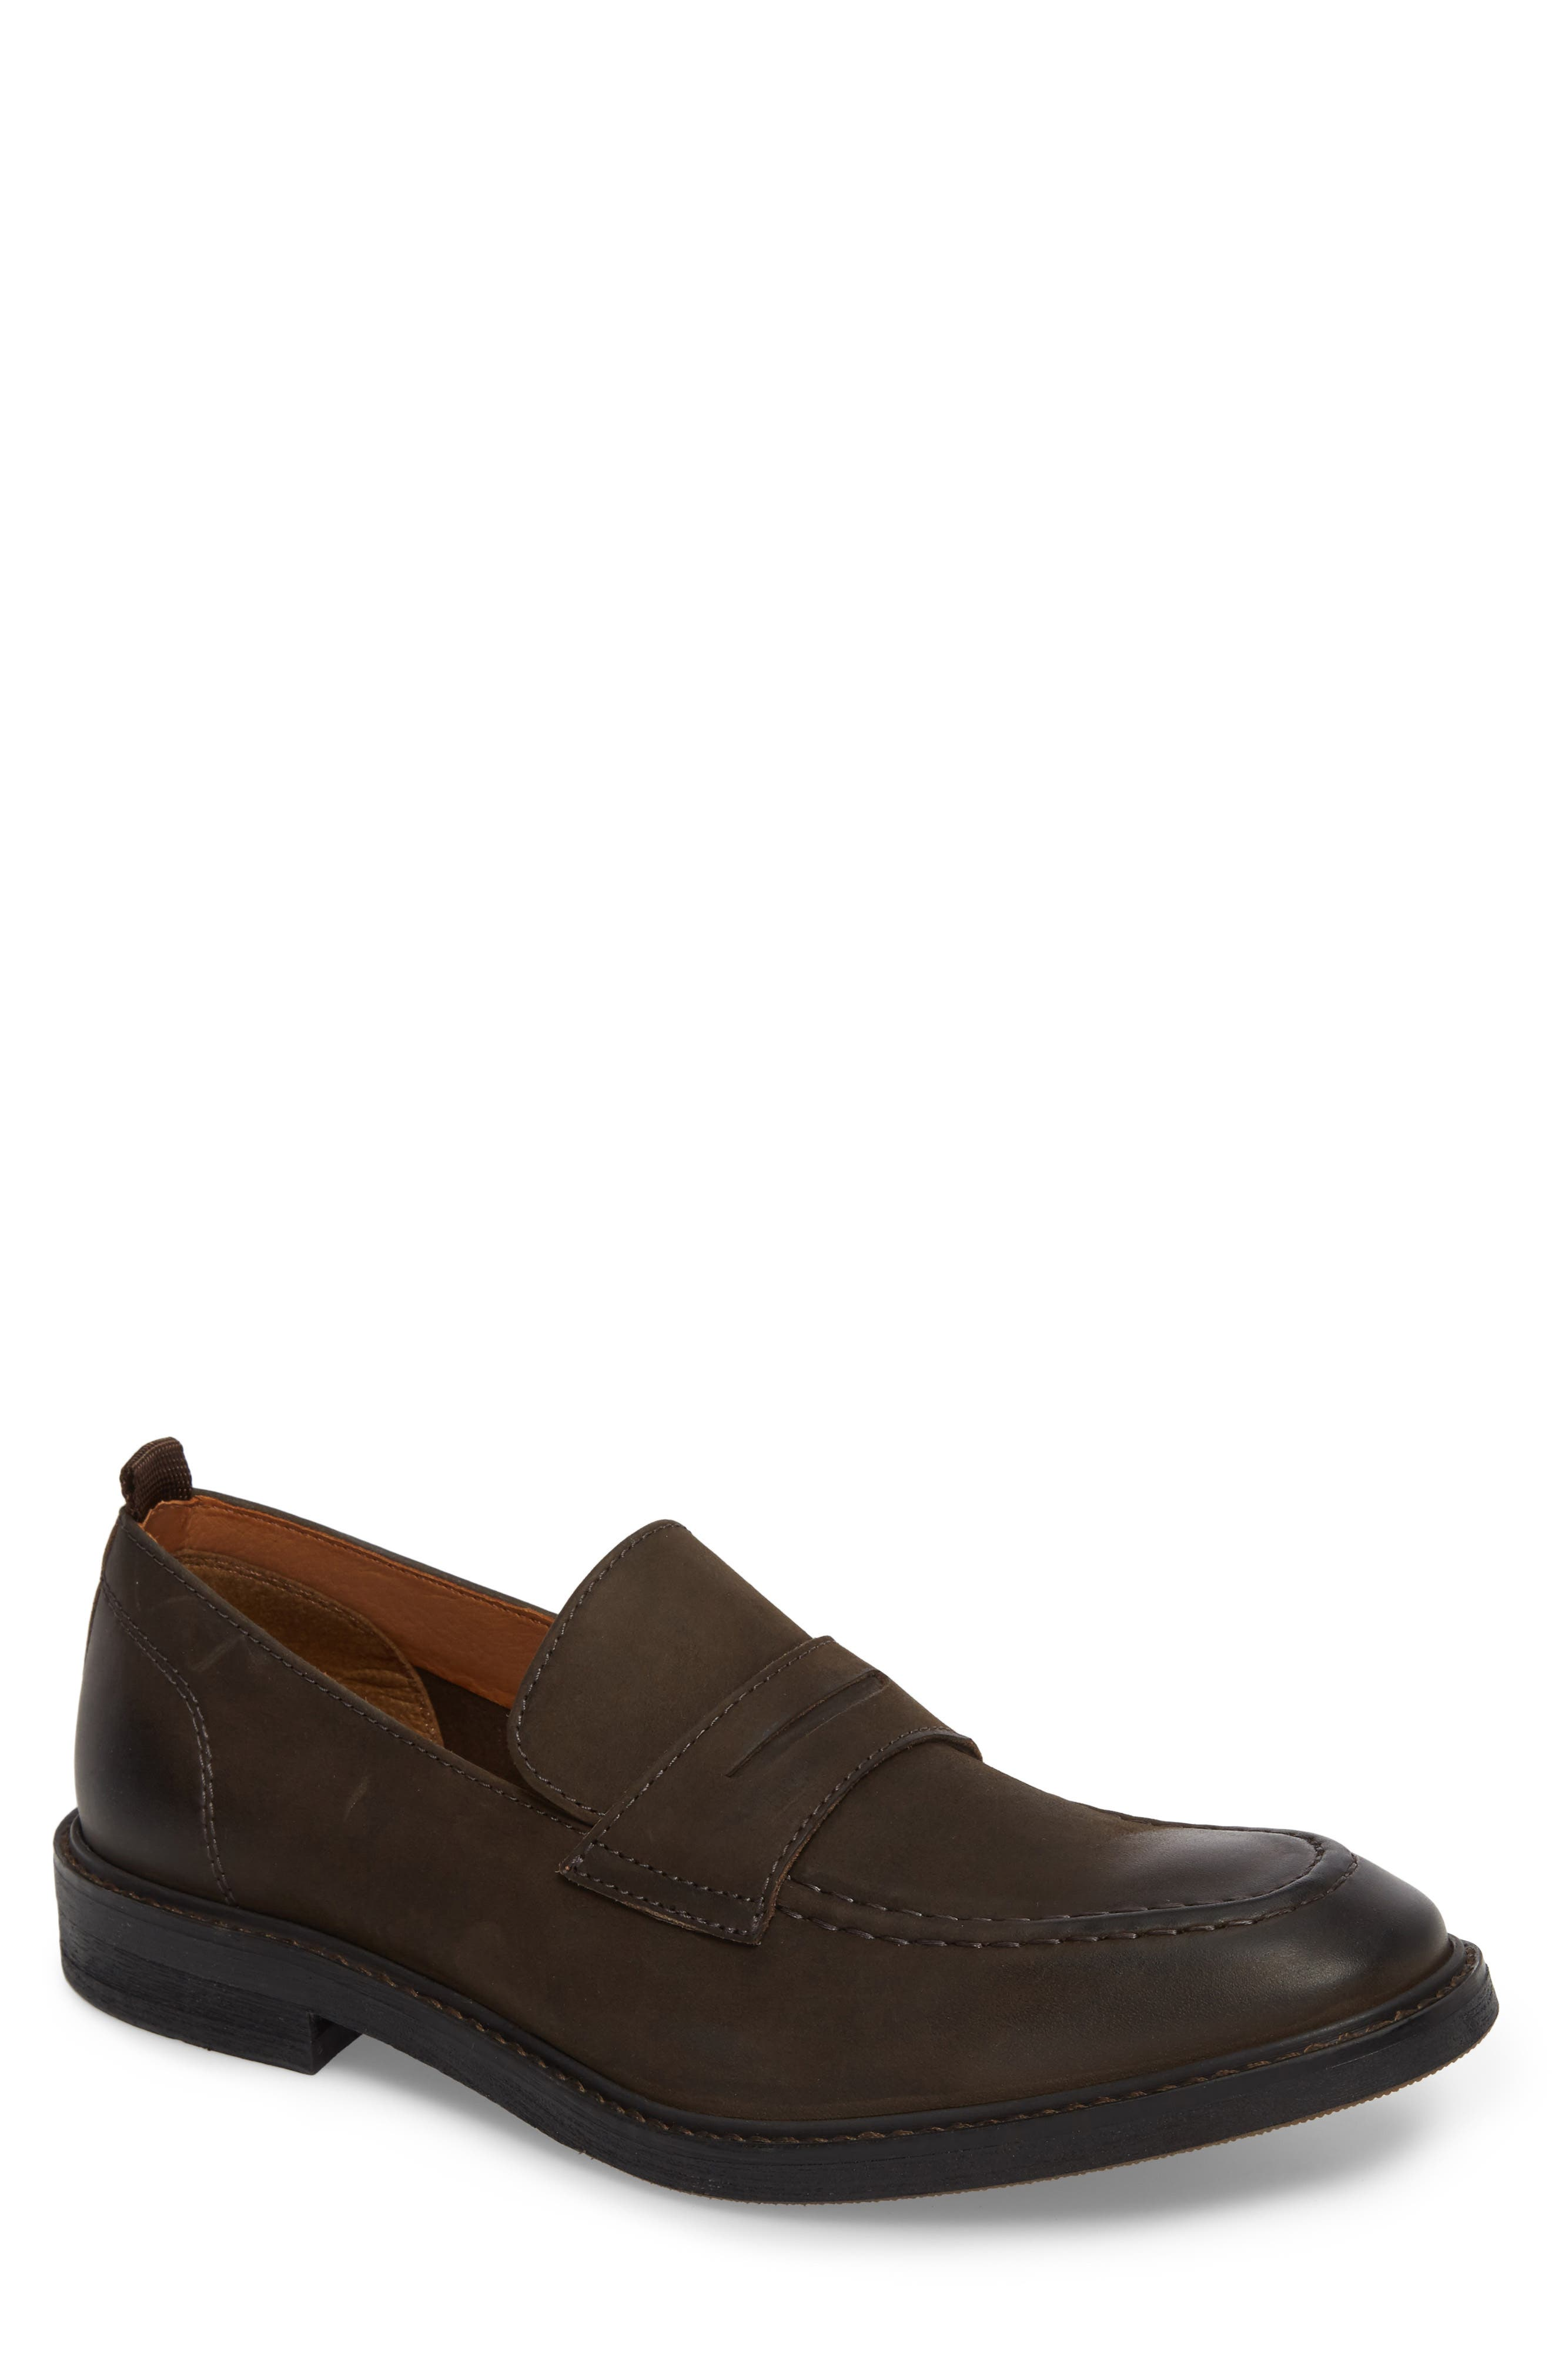 Harrington Penny Loafer,                         Main,                         color, Chocolate Leather